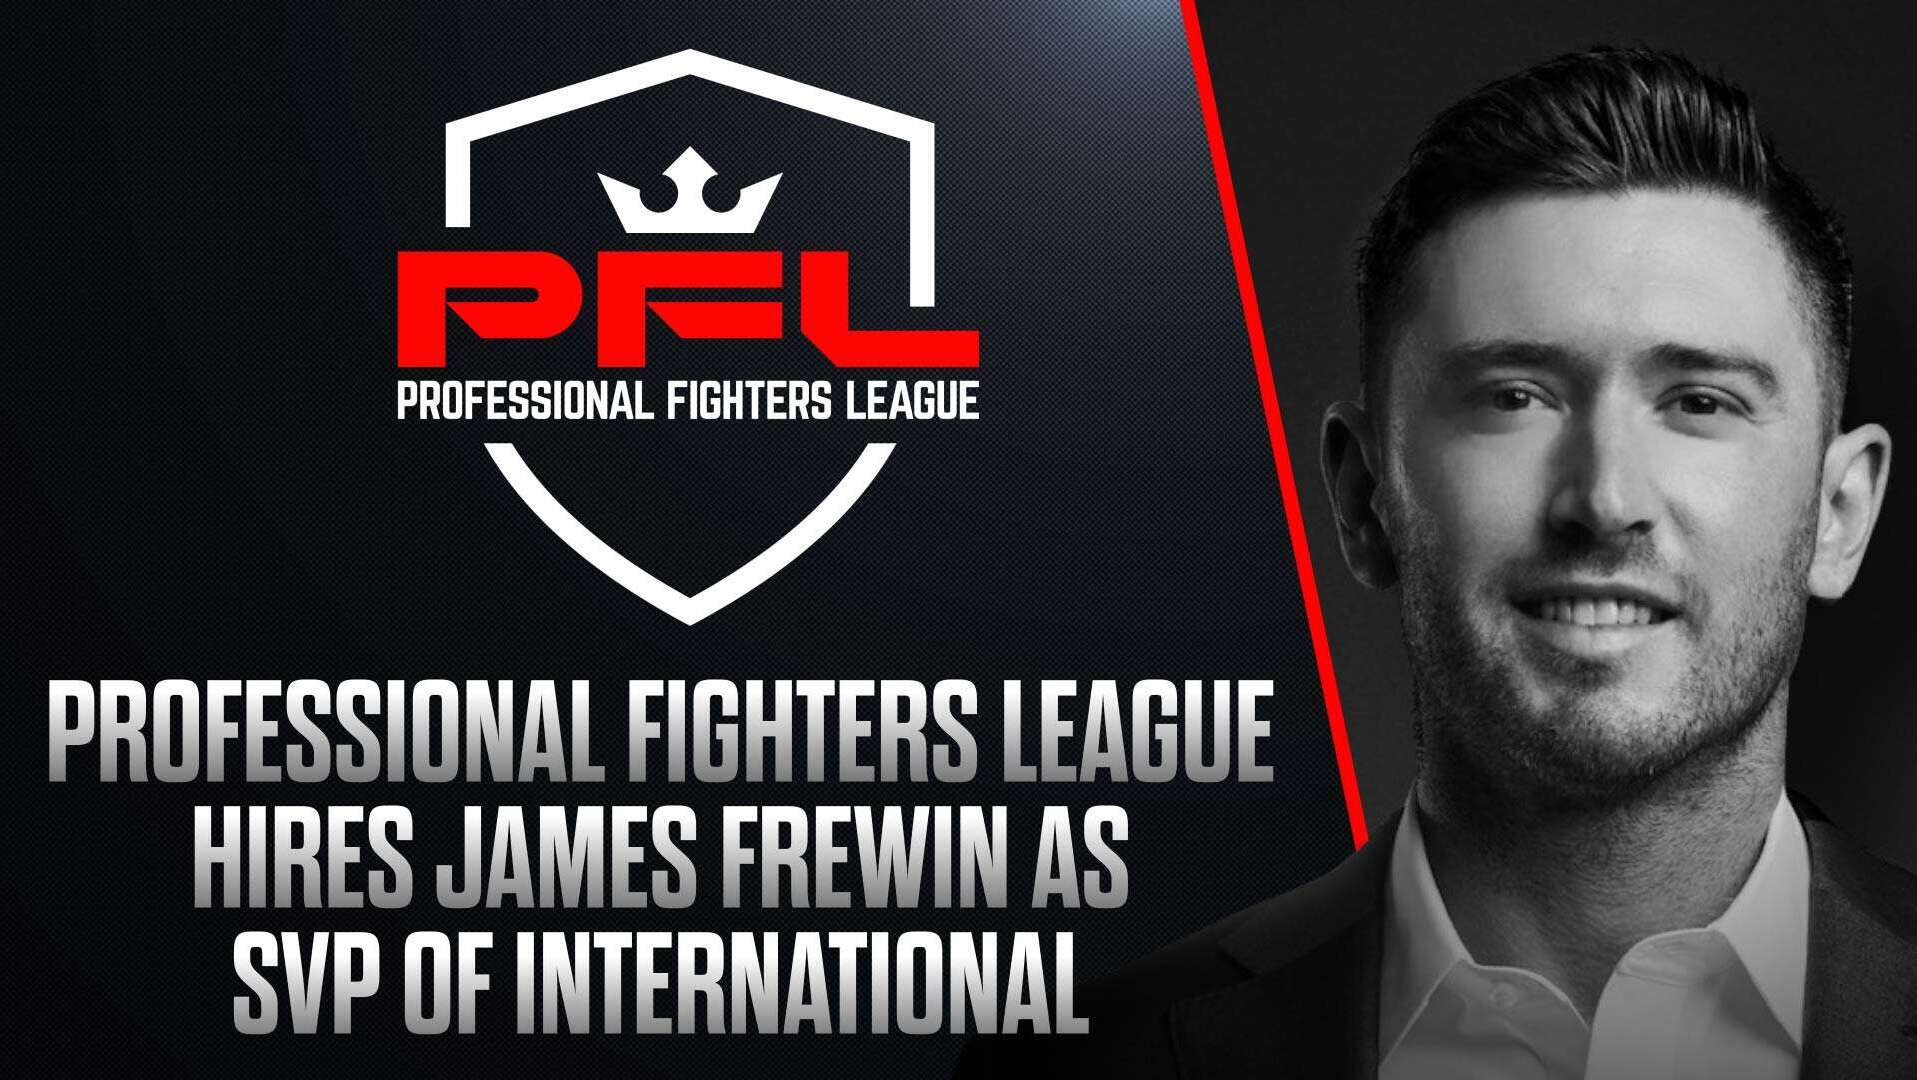 PFL MMA BOLSTERS EXECUTIVE TEAM WITH GLOBAL SPORTS AND ENTERTAINMENT EXECUTIVE JAMES FREWIN JOINING AS SVP OF INTERNATIONAL